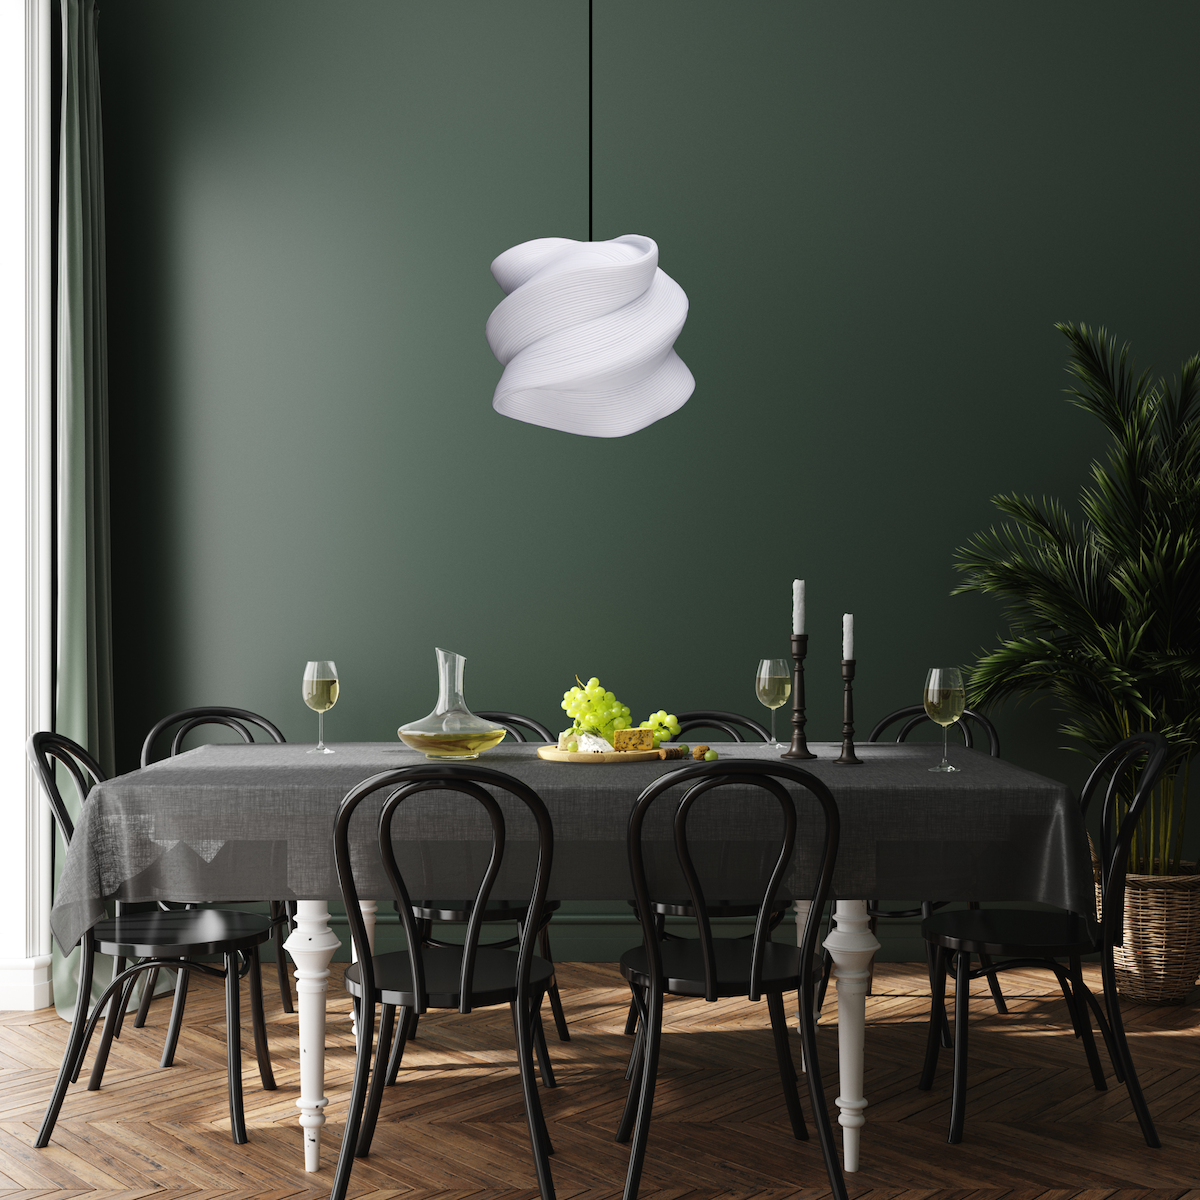 pendant-lamp-zippoo-l-above-the-kitchen-table